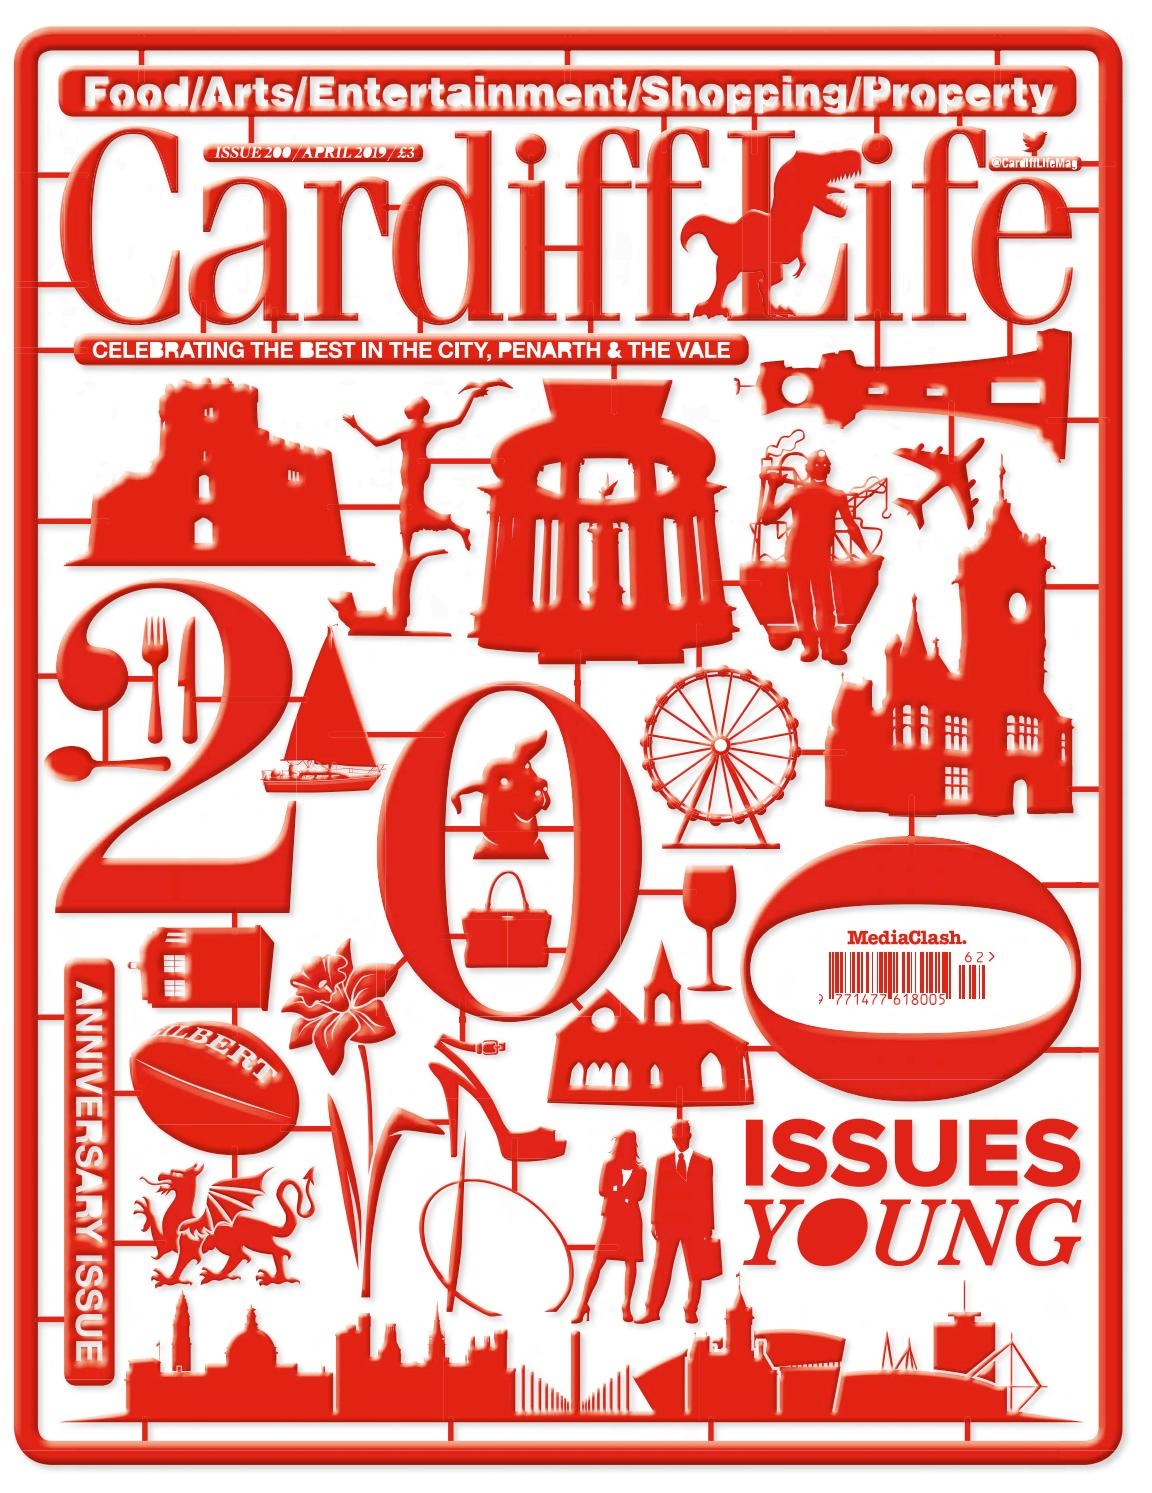 Cardiff life issue 200 by mediaclash issuu